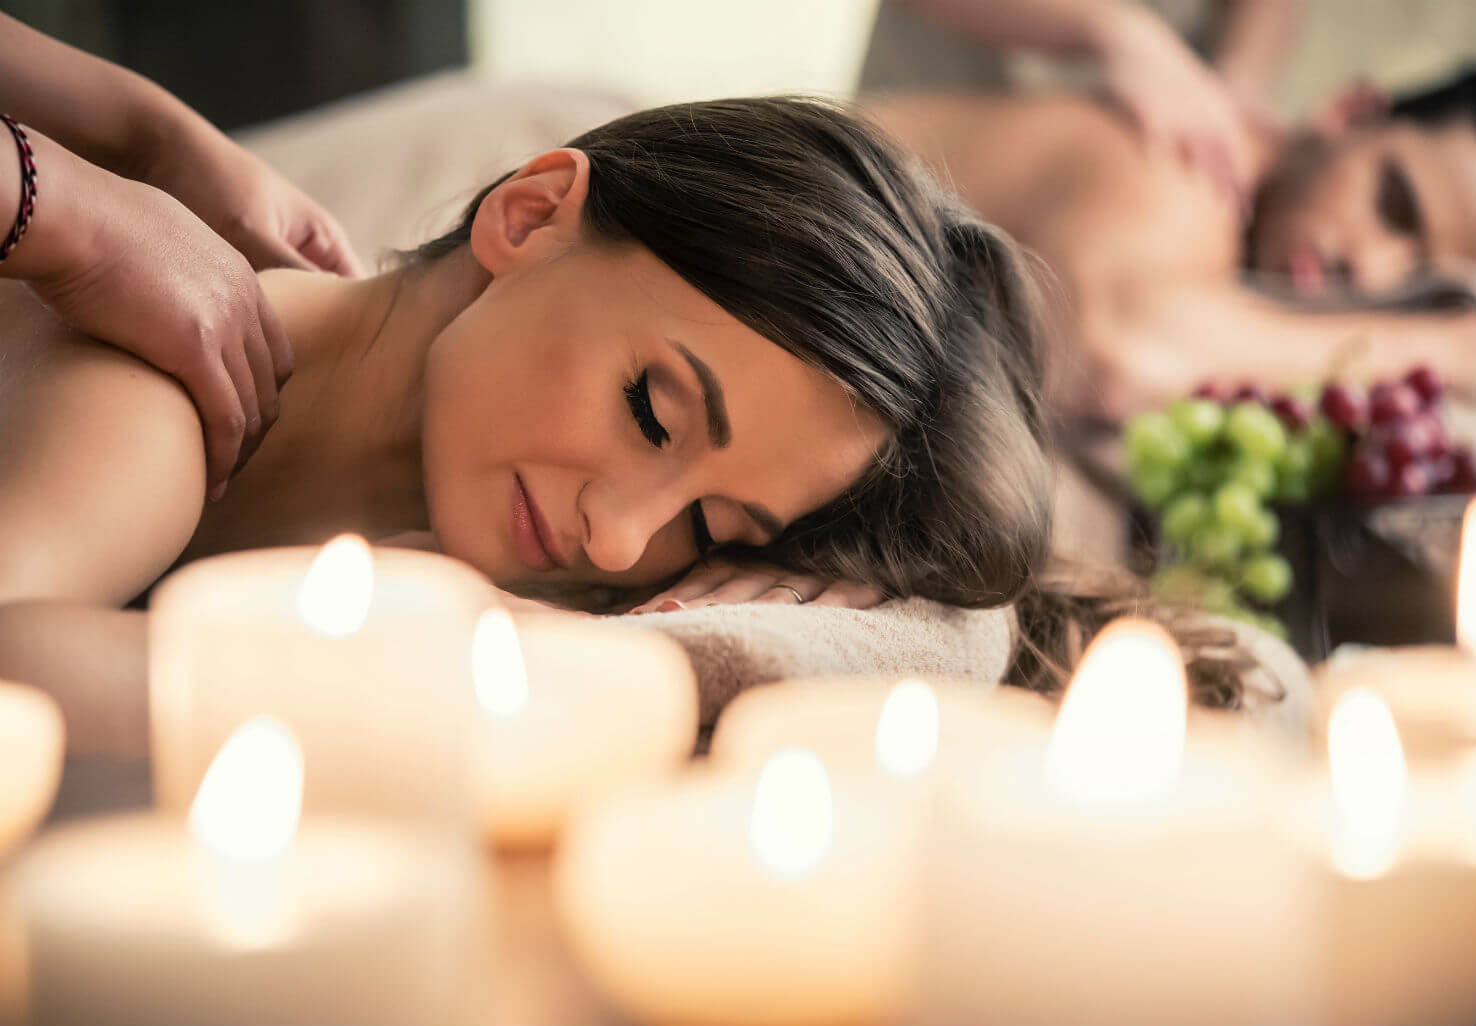 Woman receives massage while lying near candles